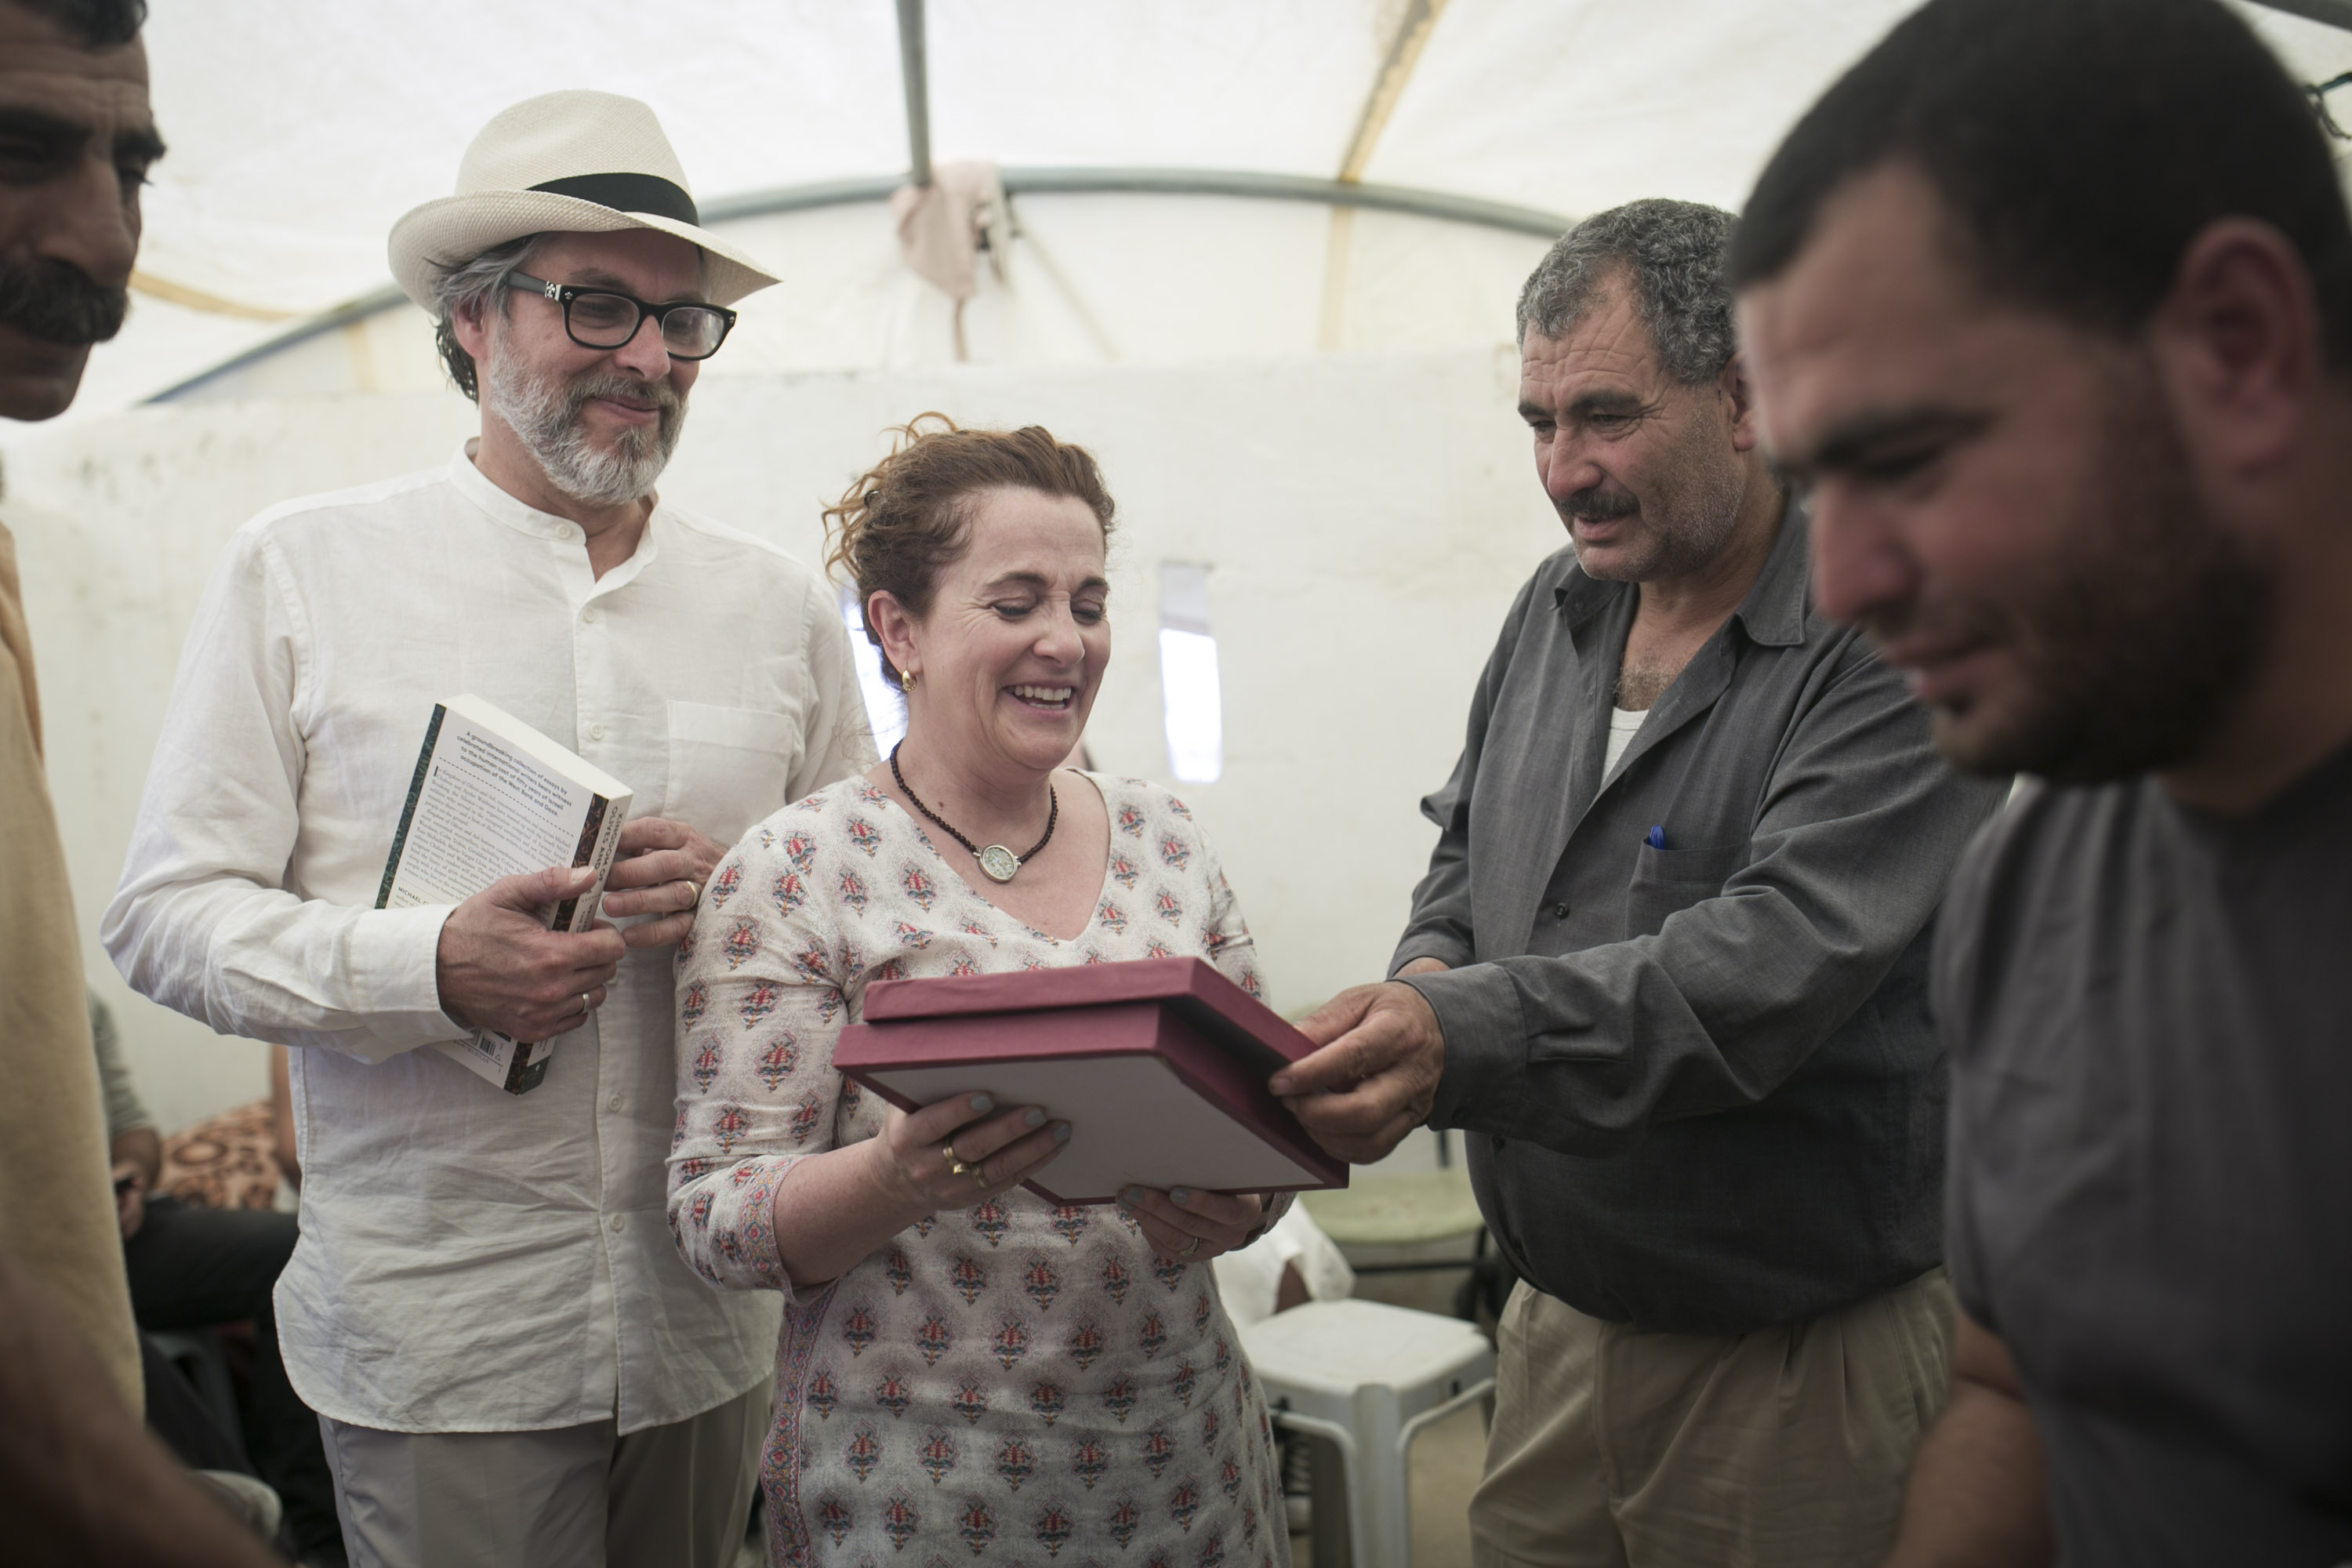 Authors Michael Chabon (left) and Ayelet Waldman (middle left) receive a plaque from the Palestinian residents of Susya, recognizing their contribution to the village's struggle. (Breaking the Silence)